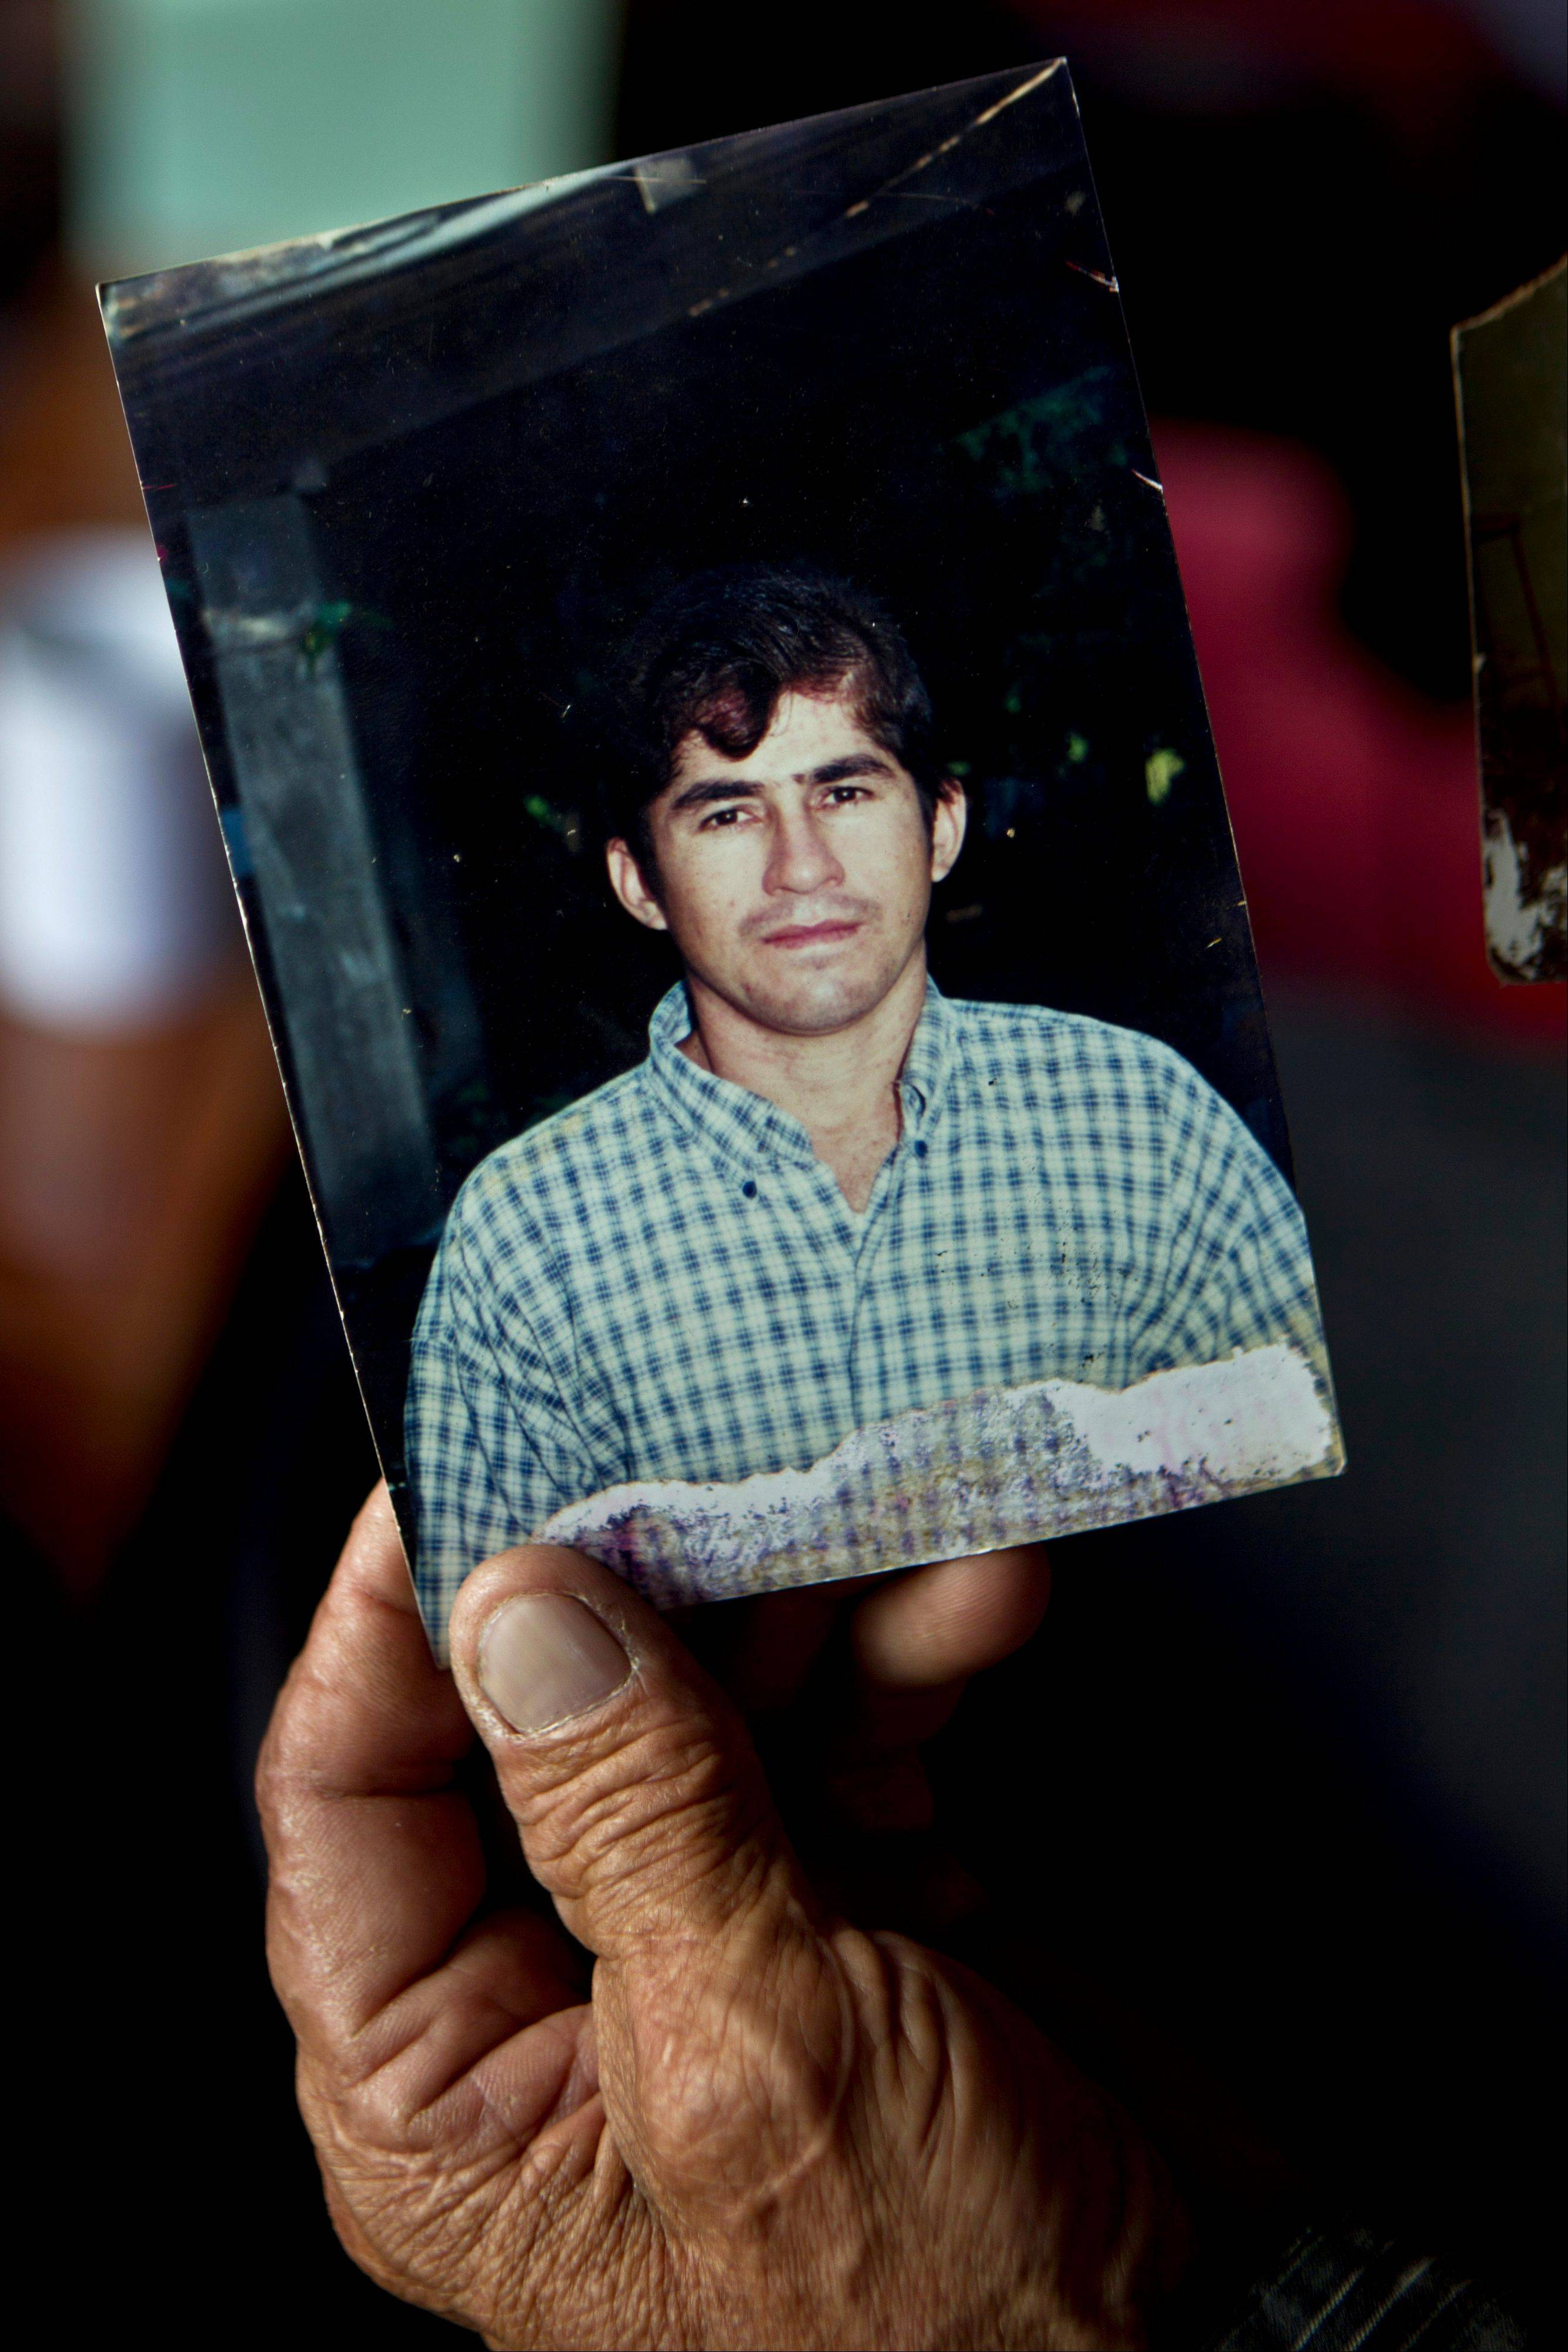 Jose Ricardo Orellana shows a photo of his son, Jose Salvador Alvarenga, when he was in his late twenties during an interview at his home in the village of Garita Palmera, El Salvador, Tuesday. The account of Alvarenga�s survival after more than 13 months in an open boat has proven a double miracle for his family, who lost touch with him years ago and thought he was dead. Alvarenga says he left Mexico in December 2012 for a day of shark fishing and ended up on the remote Marshall Islands.